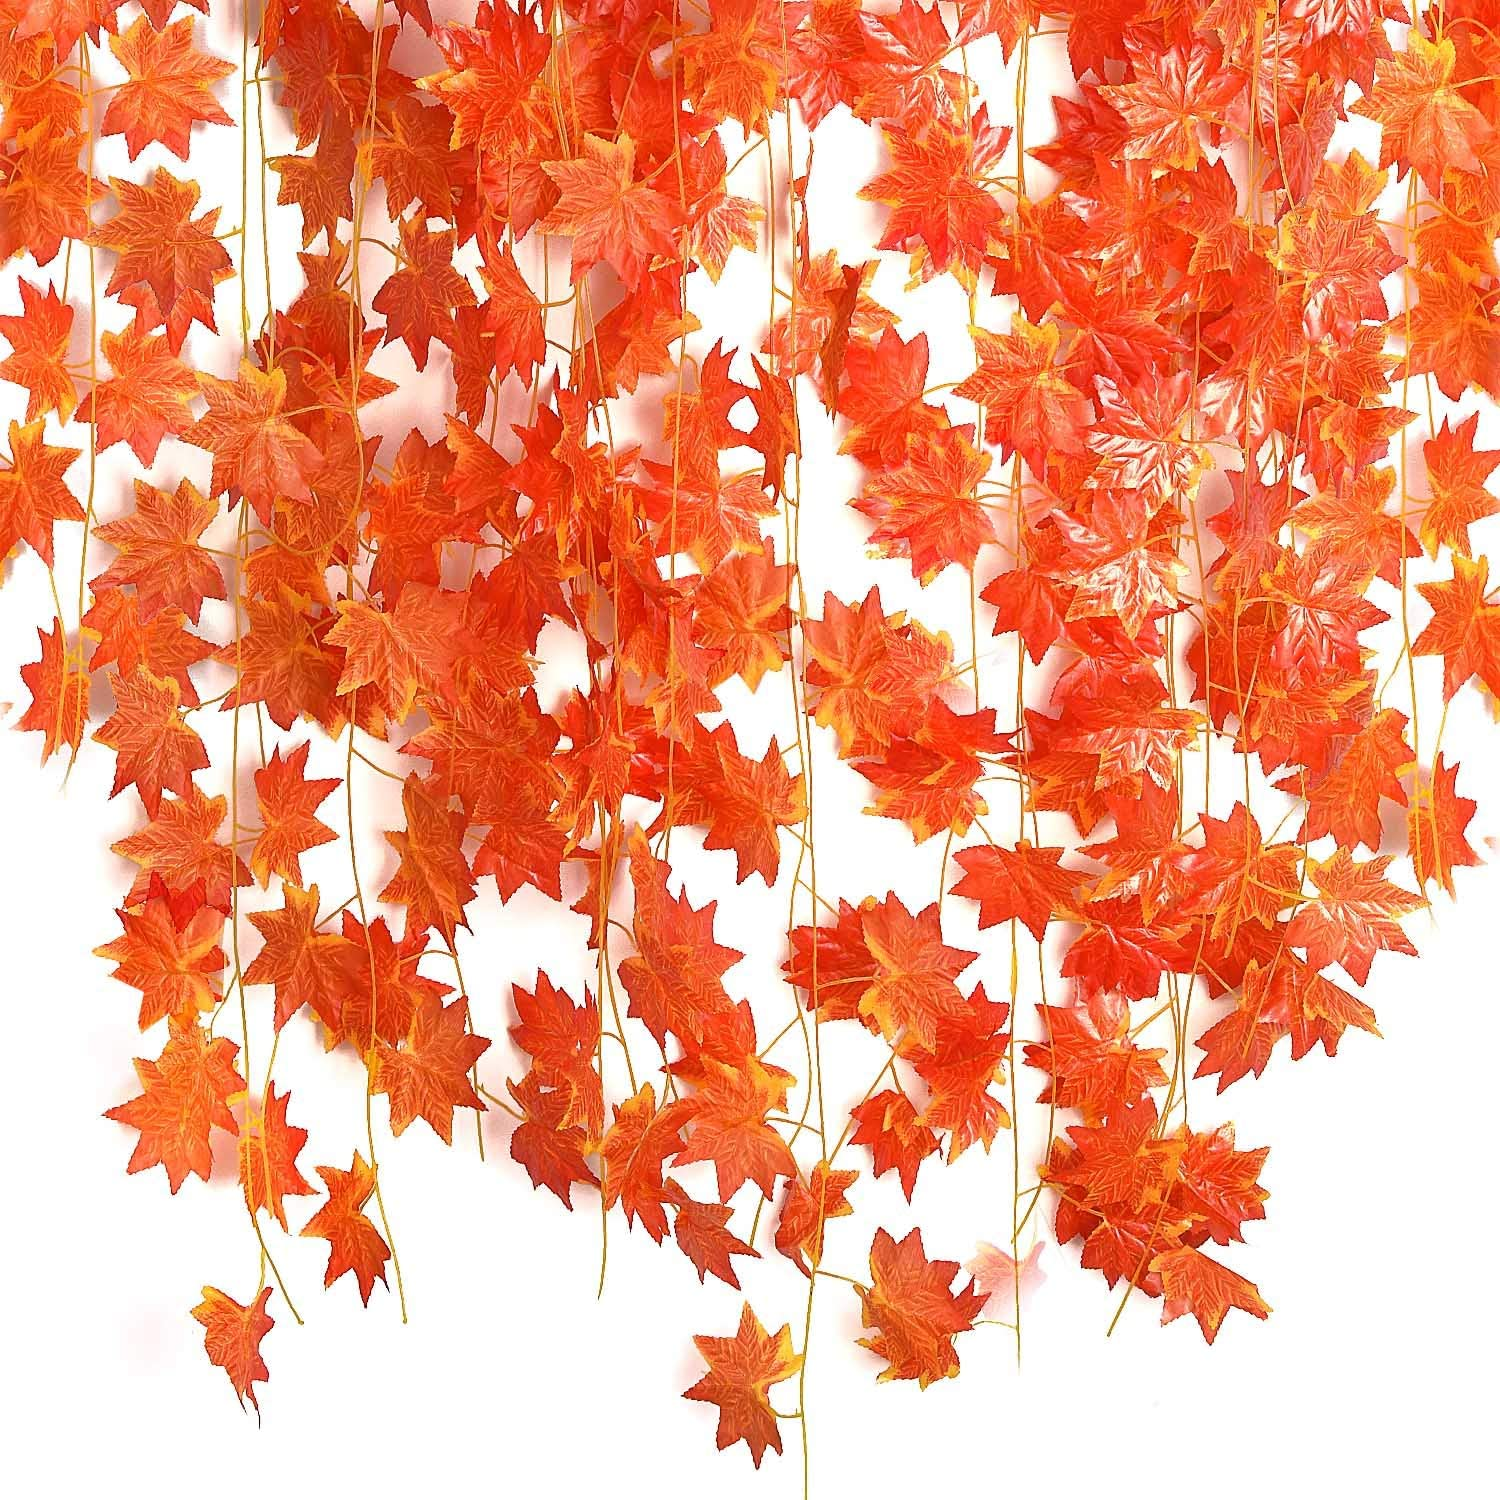 Udefineit 90Ft Fall Artificial Maple Leaves Vines, Flake Hanging Plants Thanksgiving Decorations, 12 Pack Autumn Red Leaf Garland for Indoor Wall Decor Outdoor Garden Wedding Party